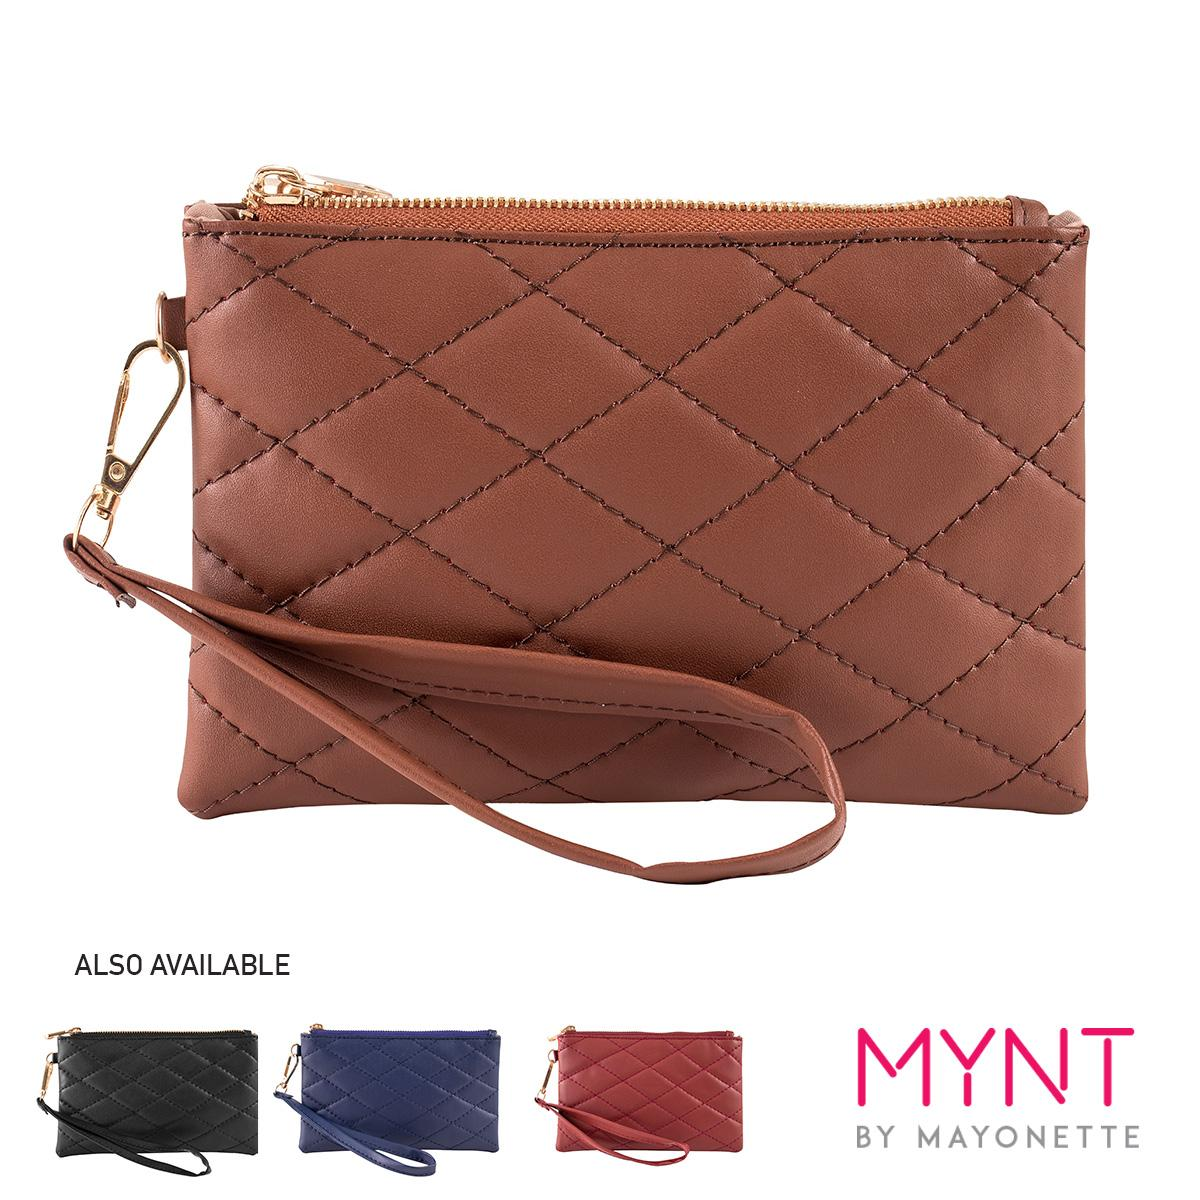 MYNT by Mayonette Dompet Korean Style Wanita   Pria Casual Simple Pouch  Best Seller Lorin Clutch 404f6d7850